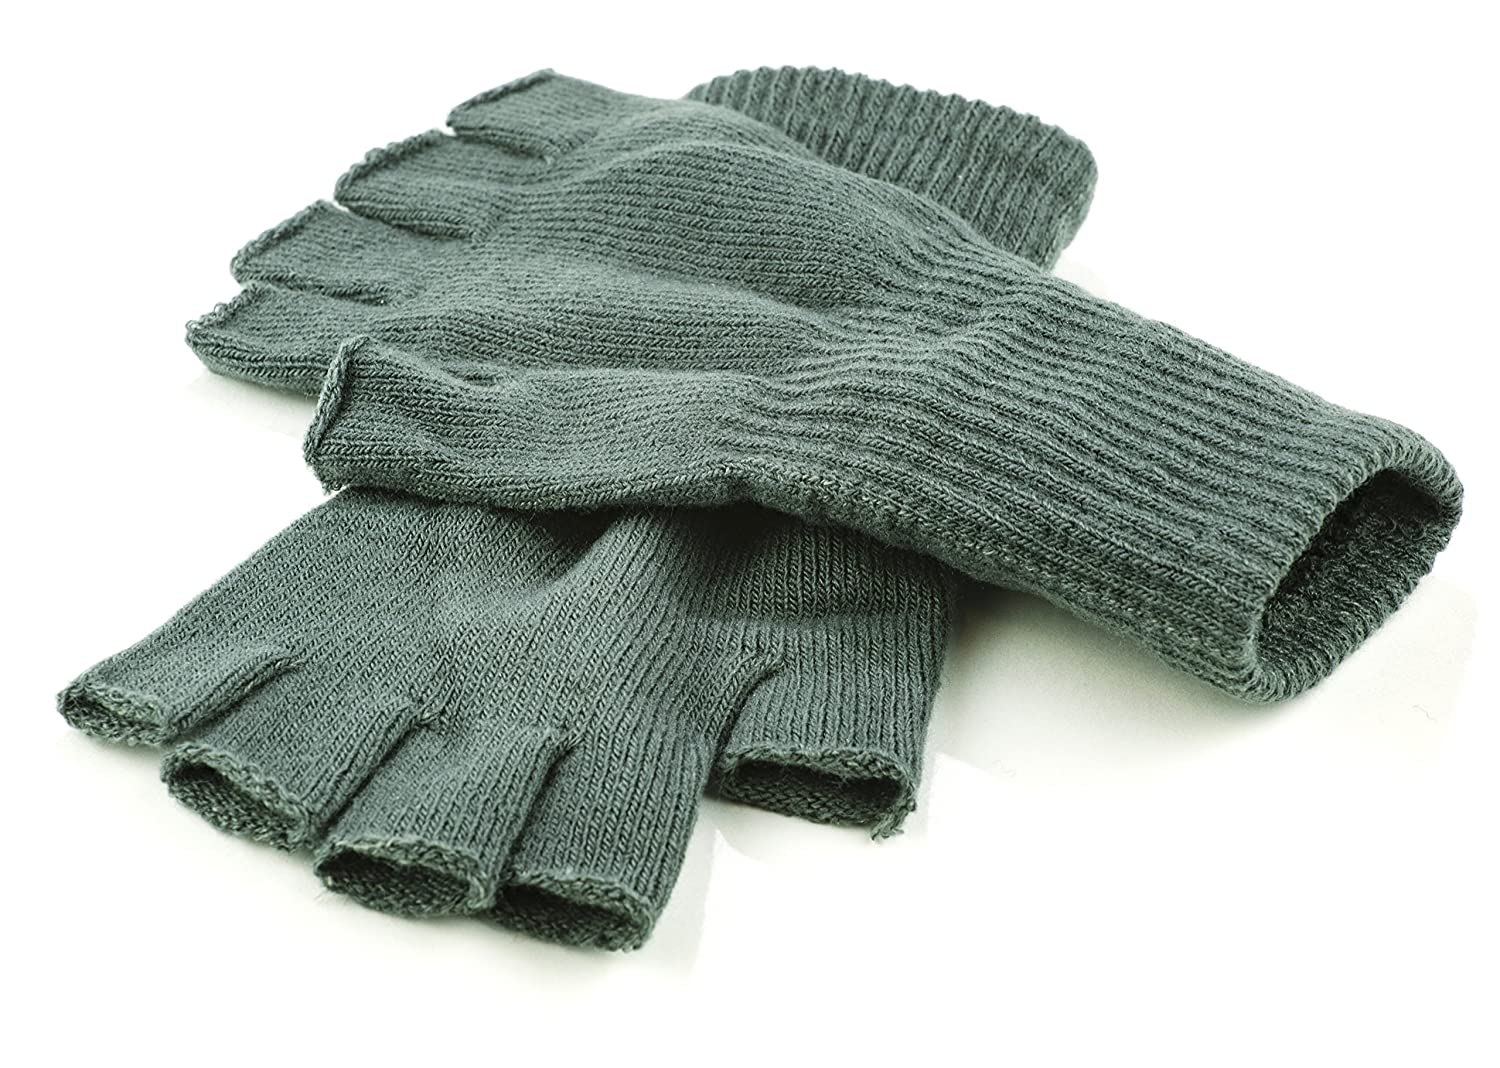 Funny Guy Mugs Warm Stretchy Knit Fingerless Gloves for Women and Men, Multiple Colors Available, One Size Fits Most Black Glove-1